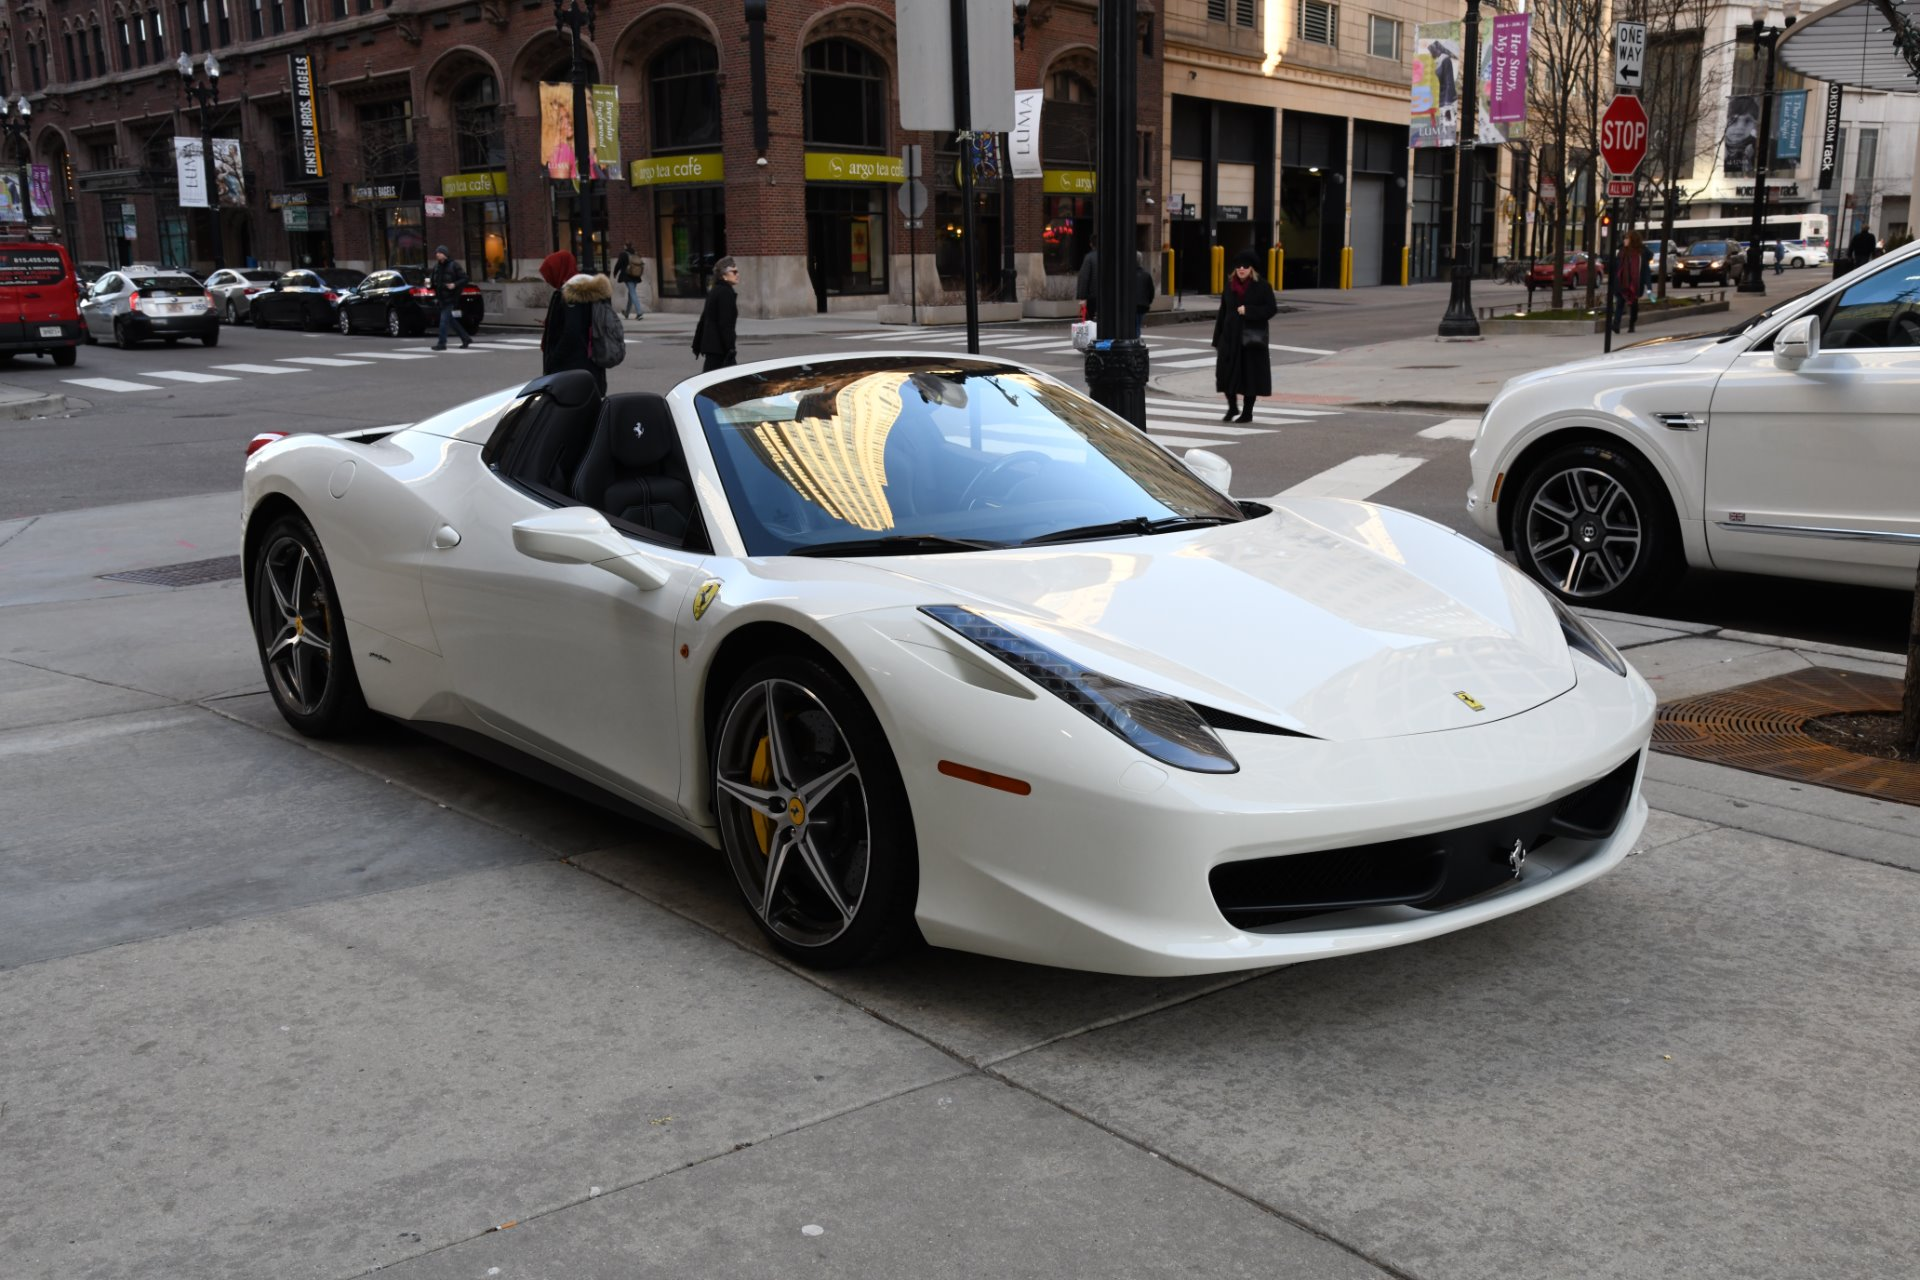 2015 ferrari 458 spider stock l427a for sale near. Black Bedroom Furniture Sets. Home Design Ideas